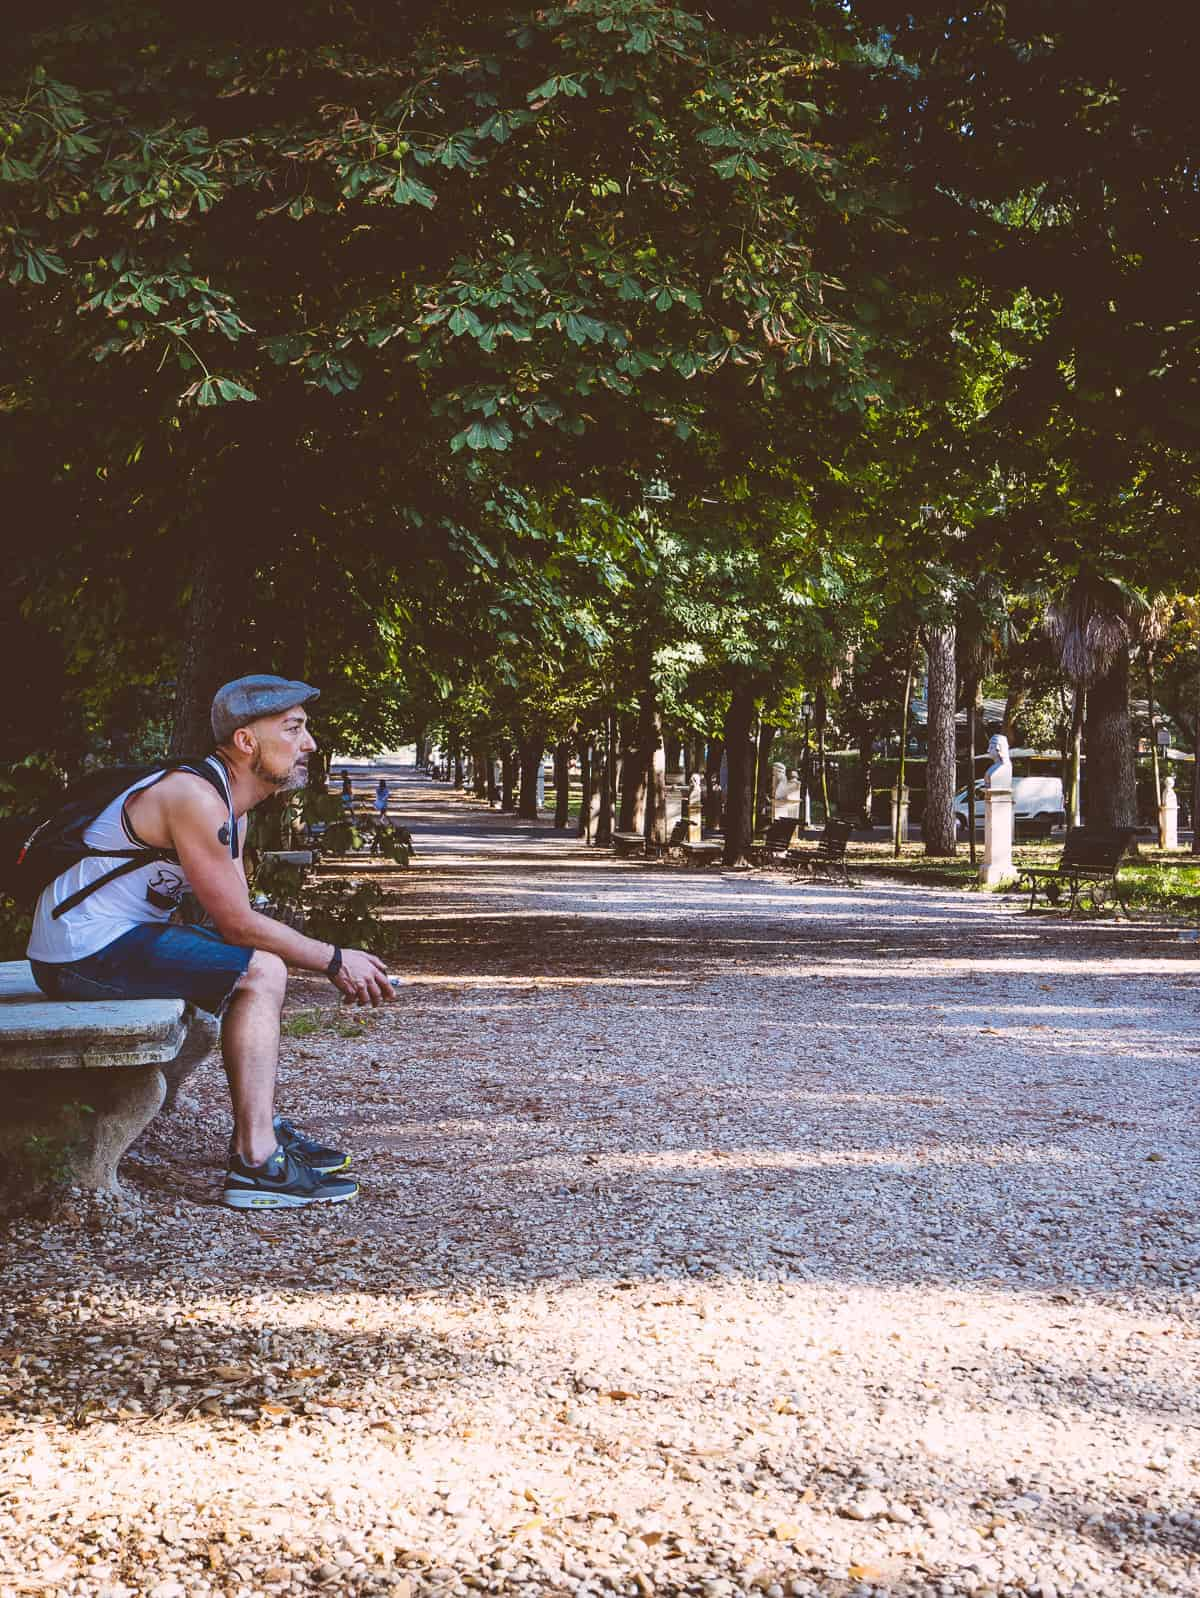 a person sitting on a park bench in the Villa Borghese Gardens